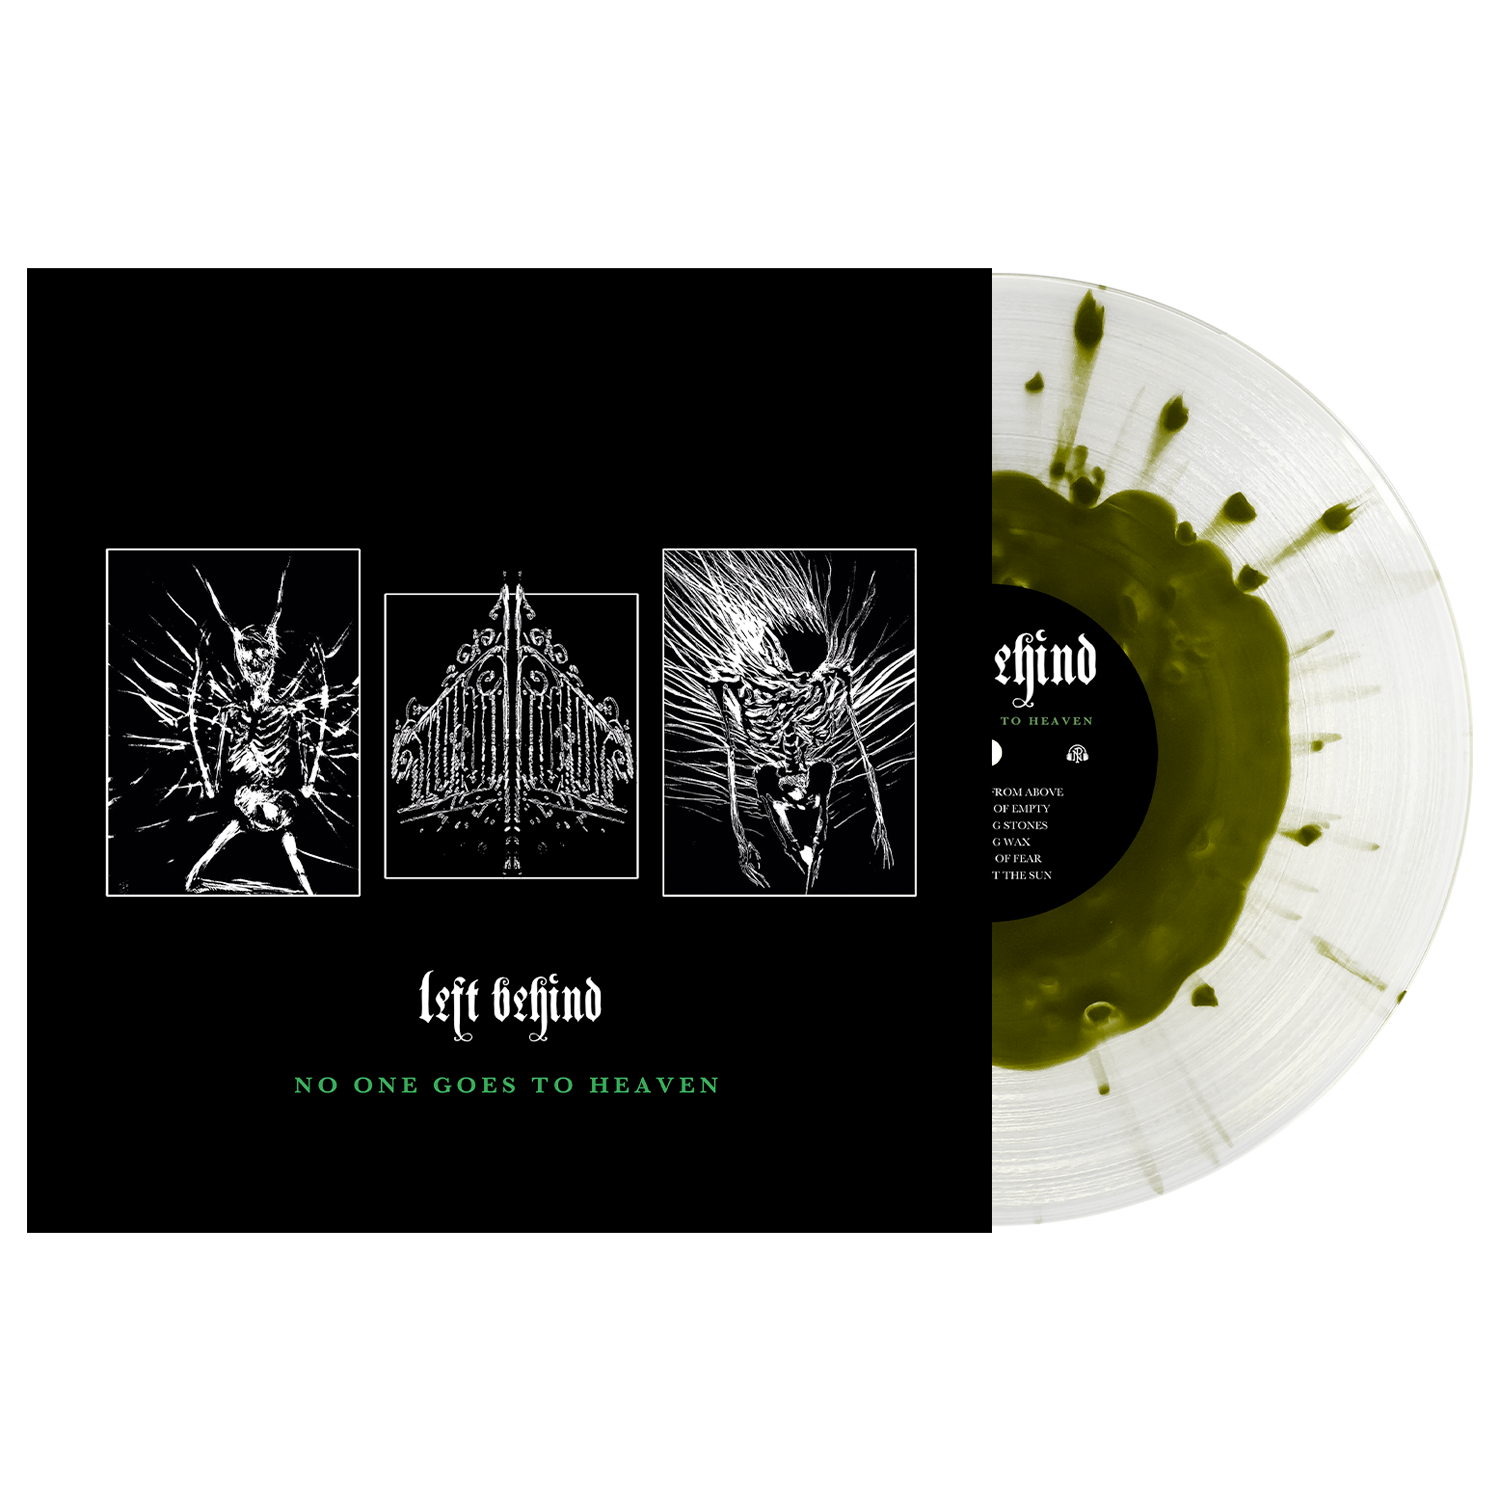 Left Behind 'No One Goes To Heaven' LP Various (Swamp Green in Clear w/ Heavy Swamp Green Splatter)